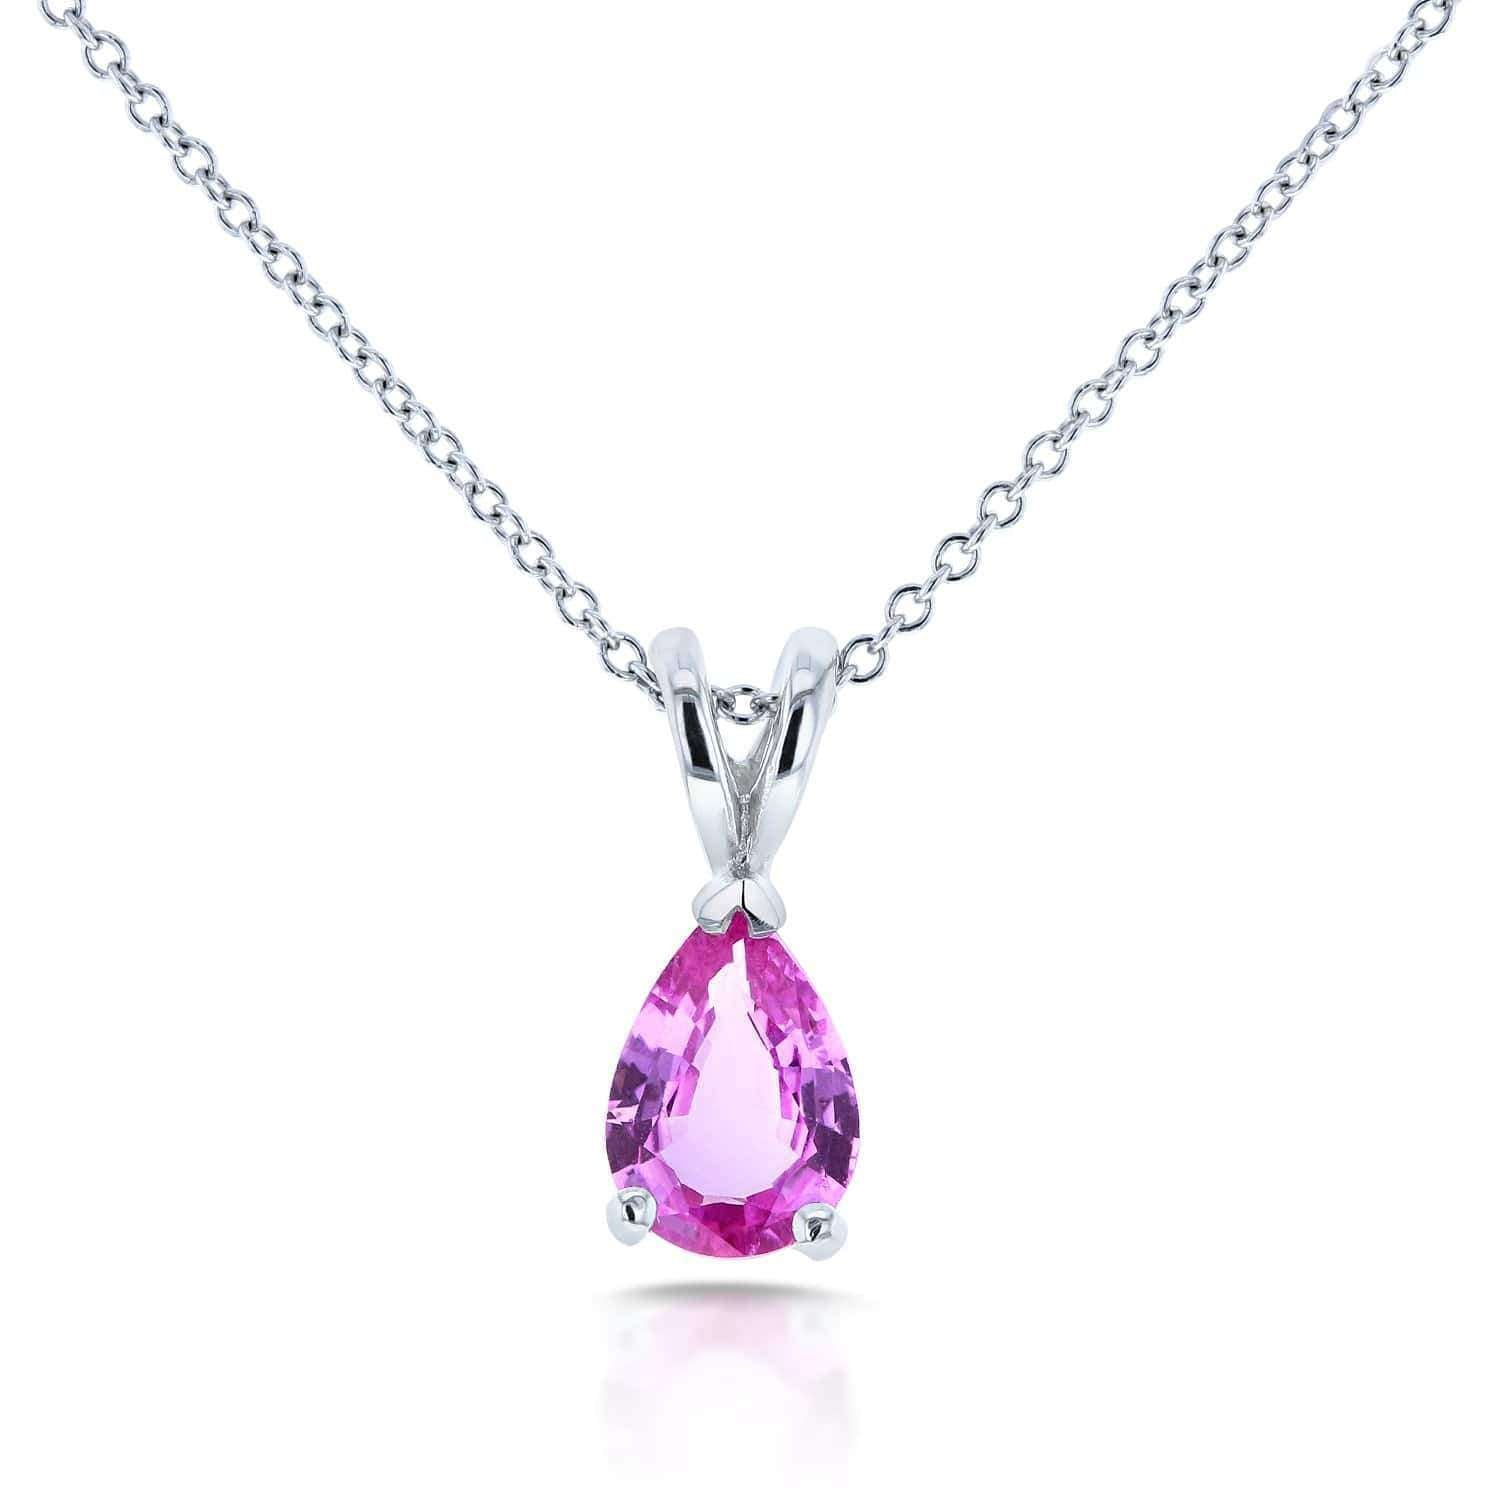 BCA Pear Shaped Pink Sapphire Solitaire Necklace